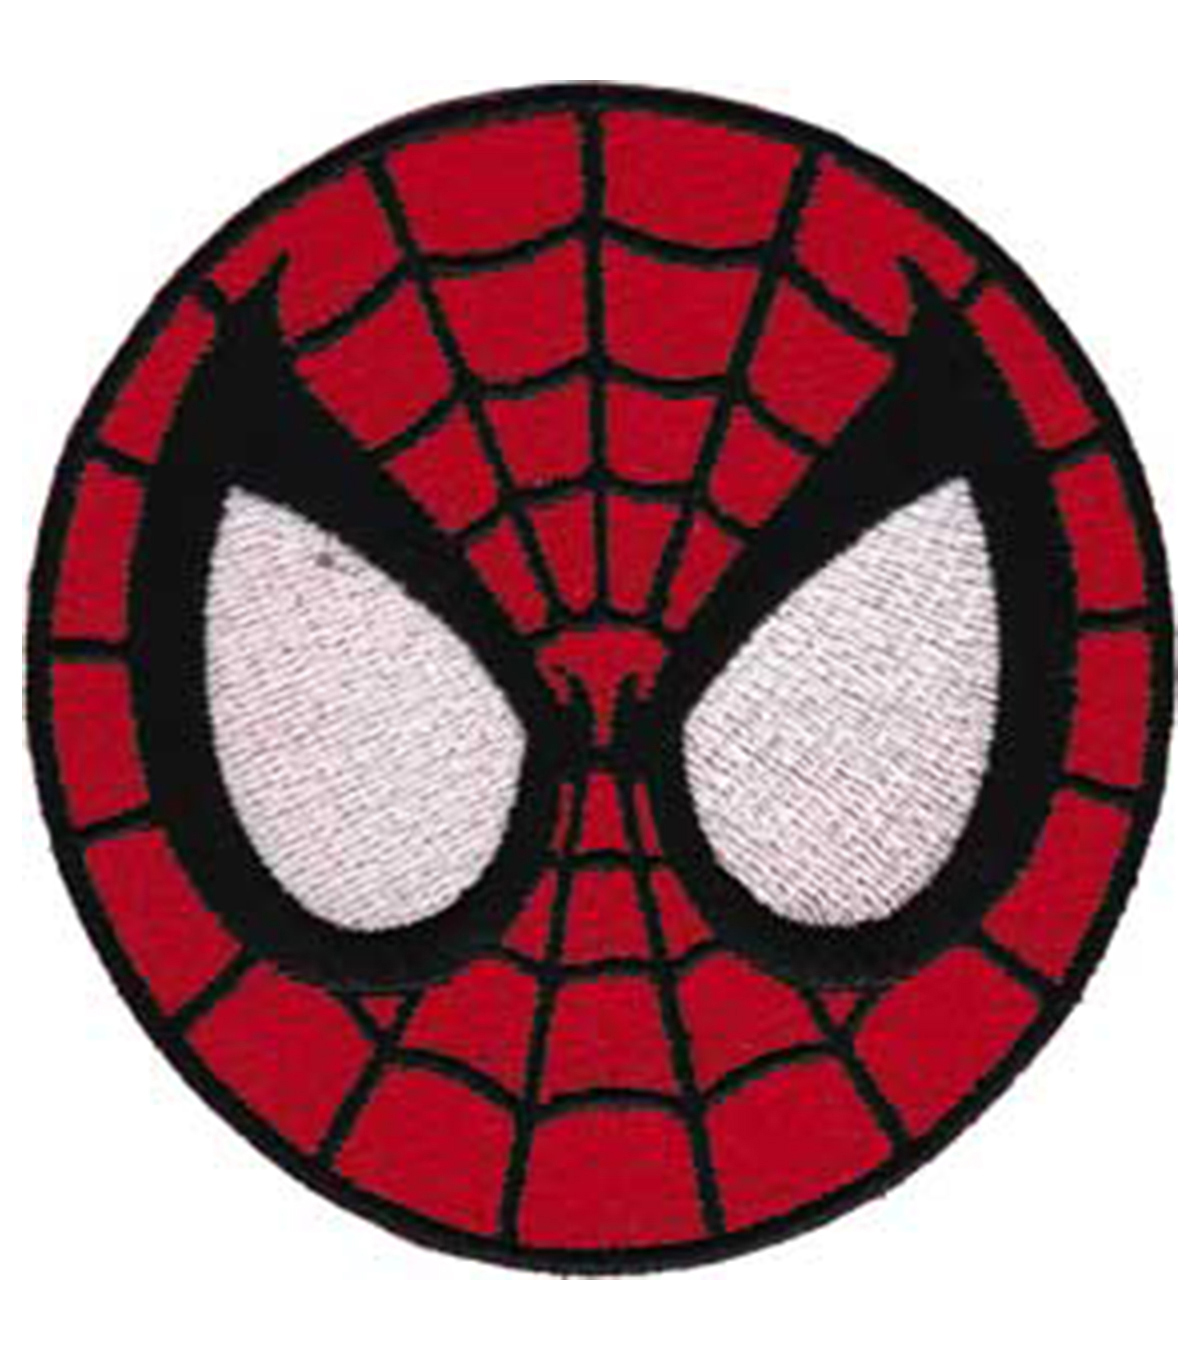 Patch-Spiderman Mask 3\u0027\u0027